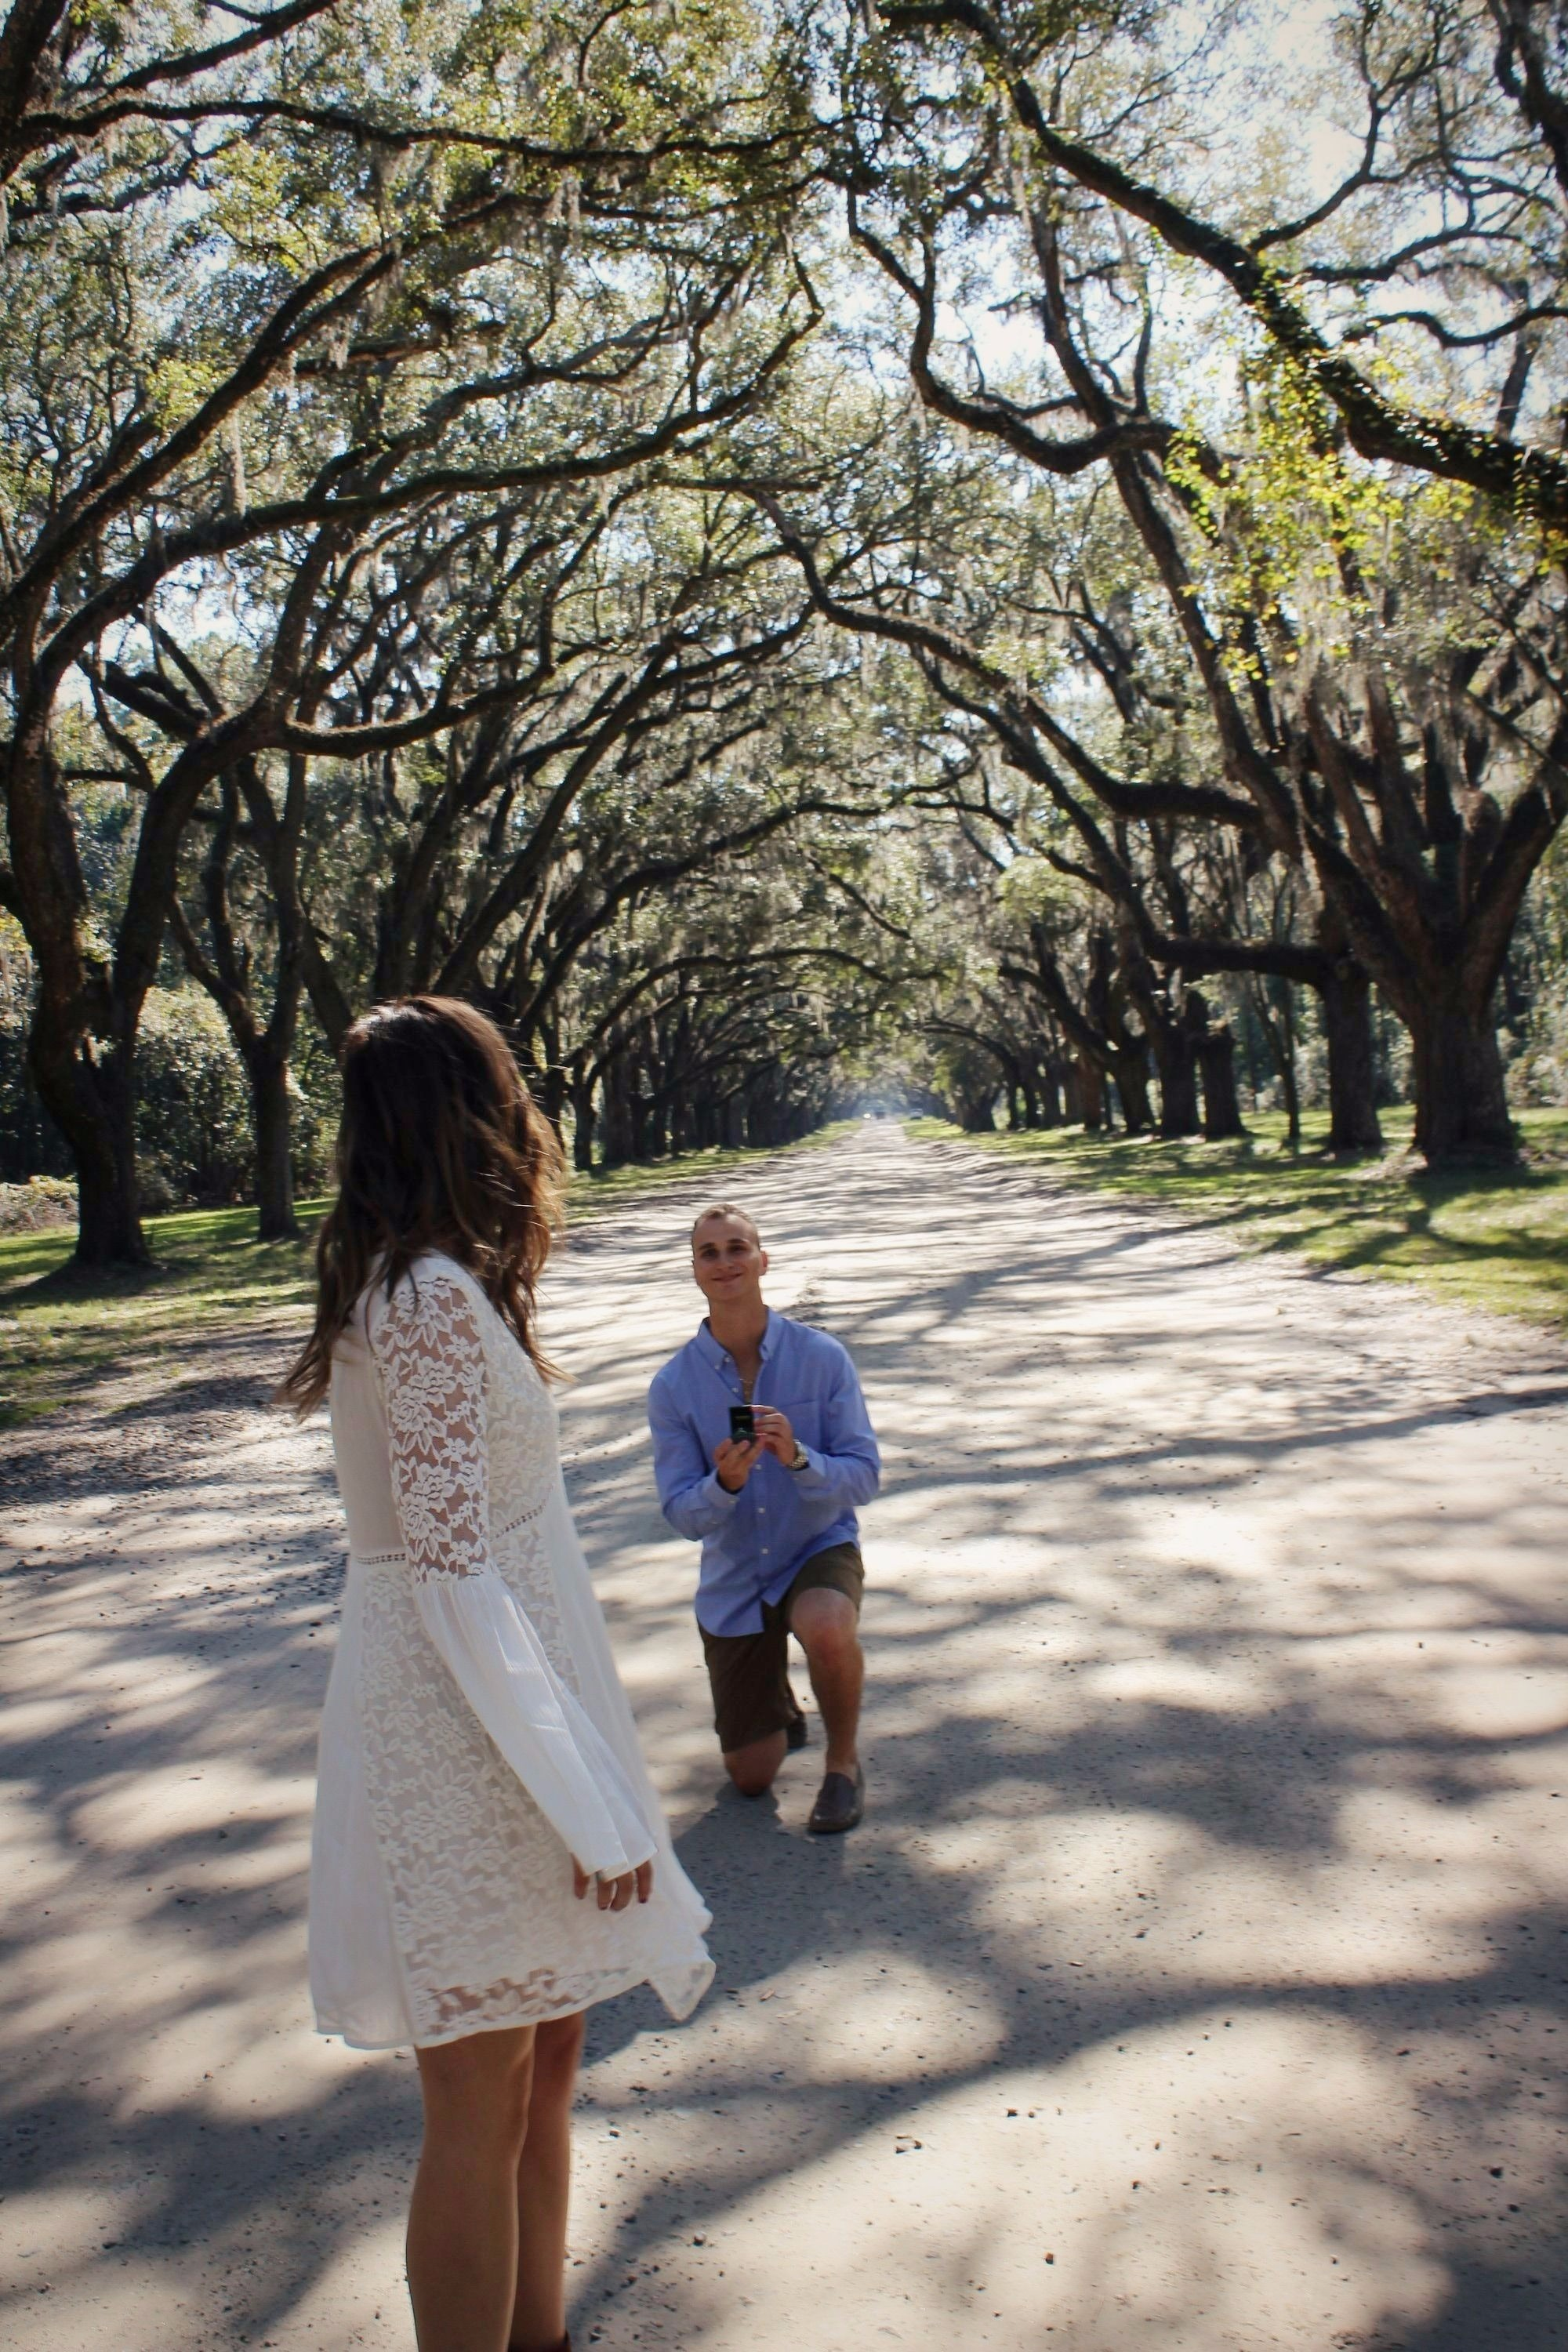 Wedding Proposal Ideas in Wormsloe Plantation, Savannah, Georgia